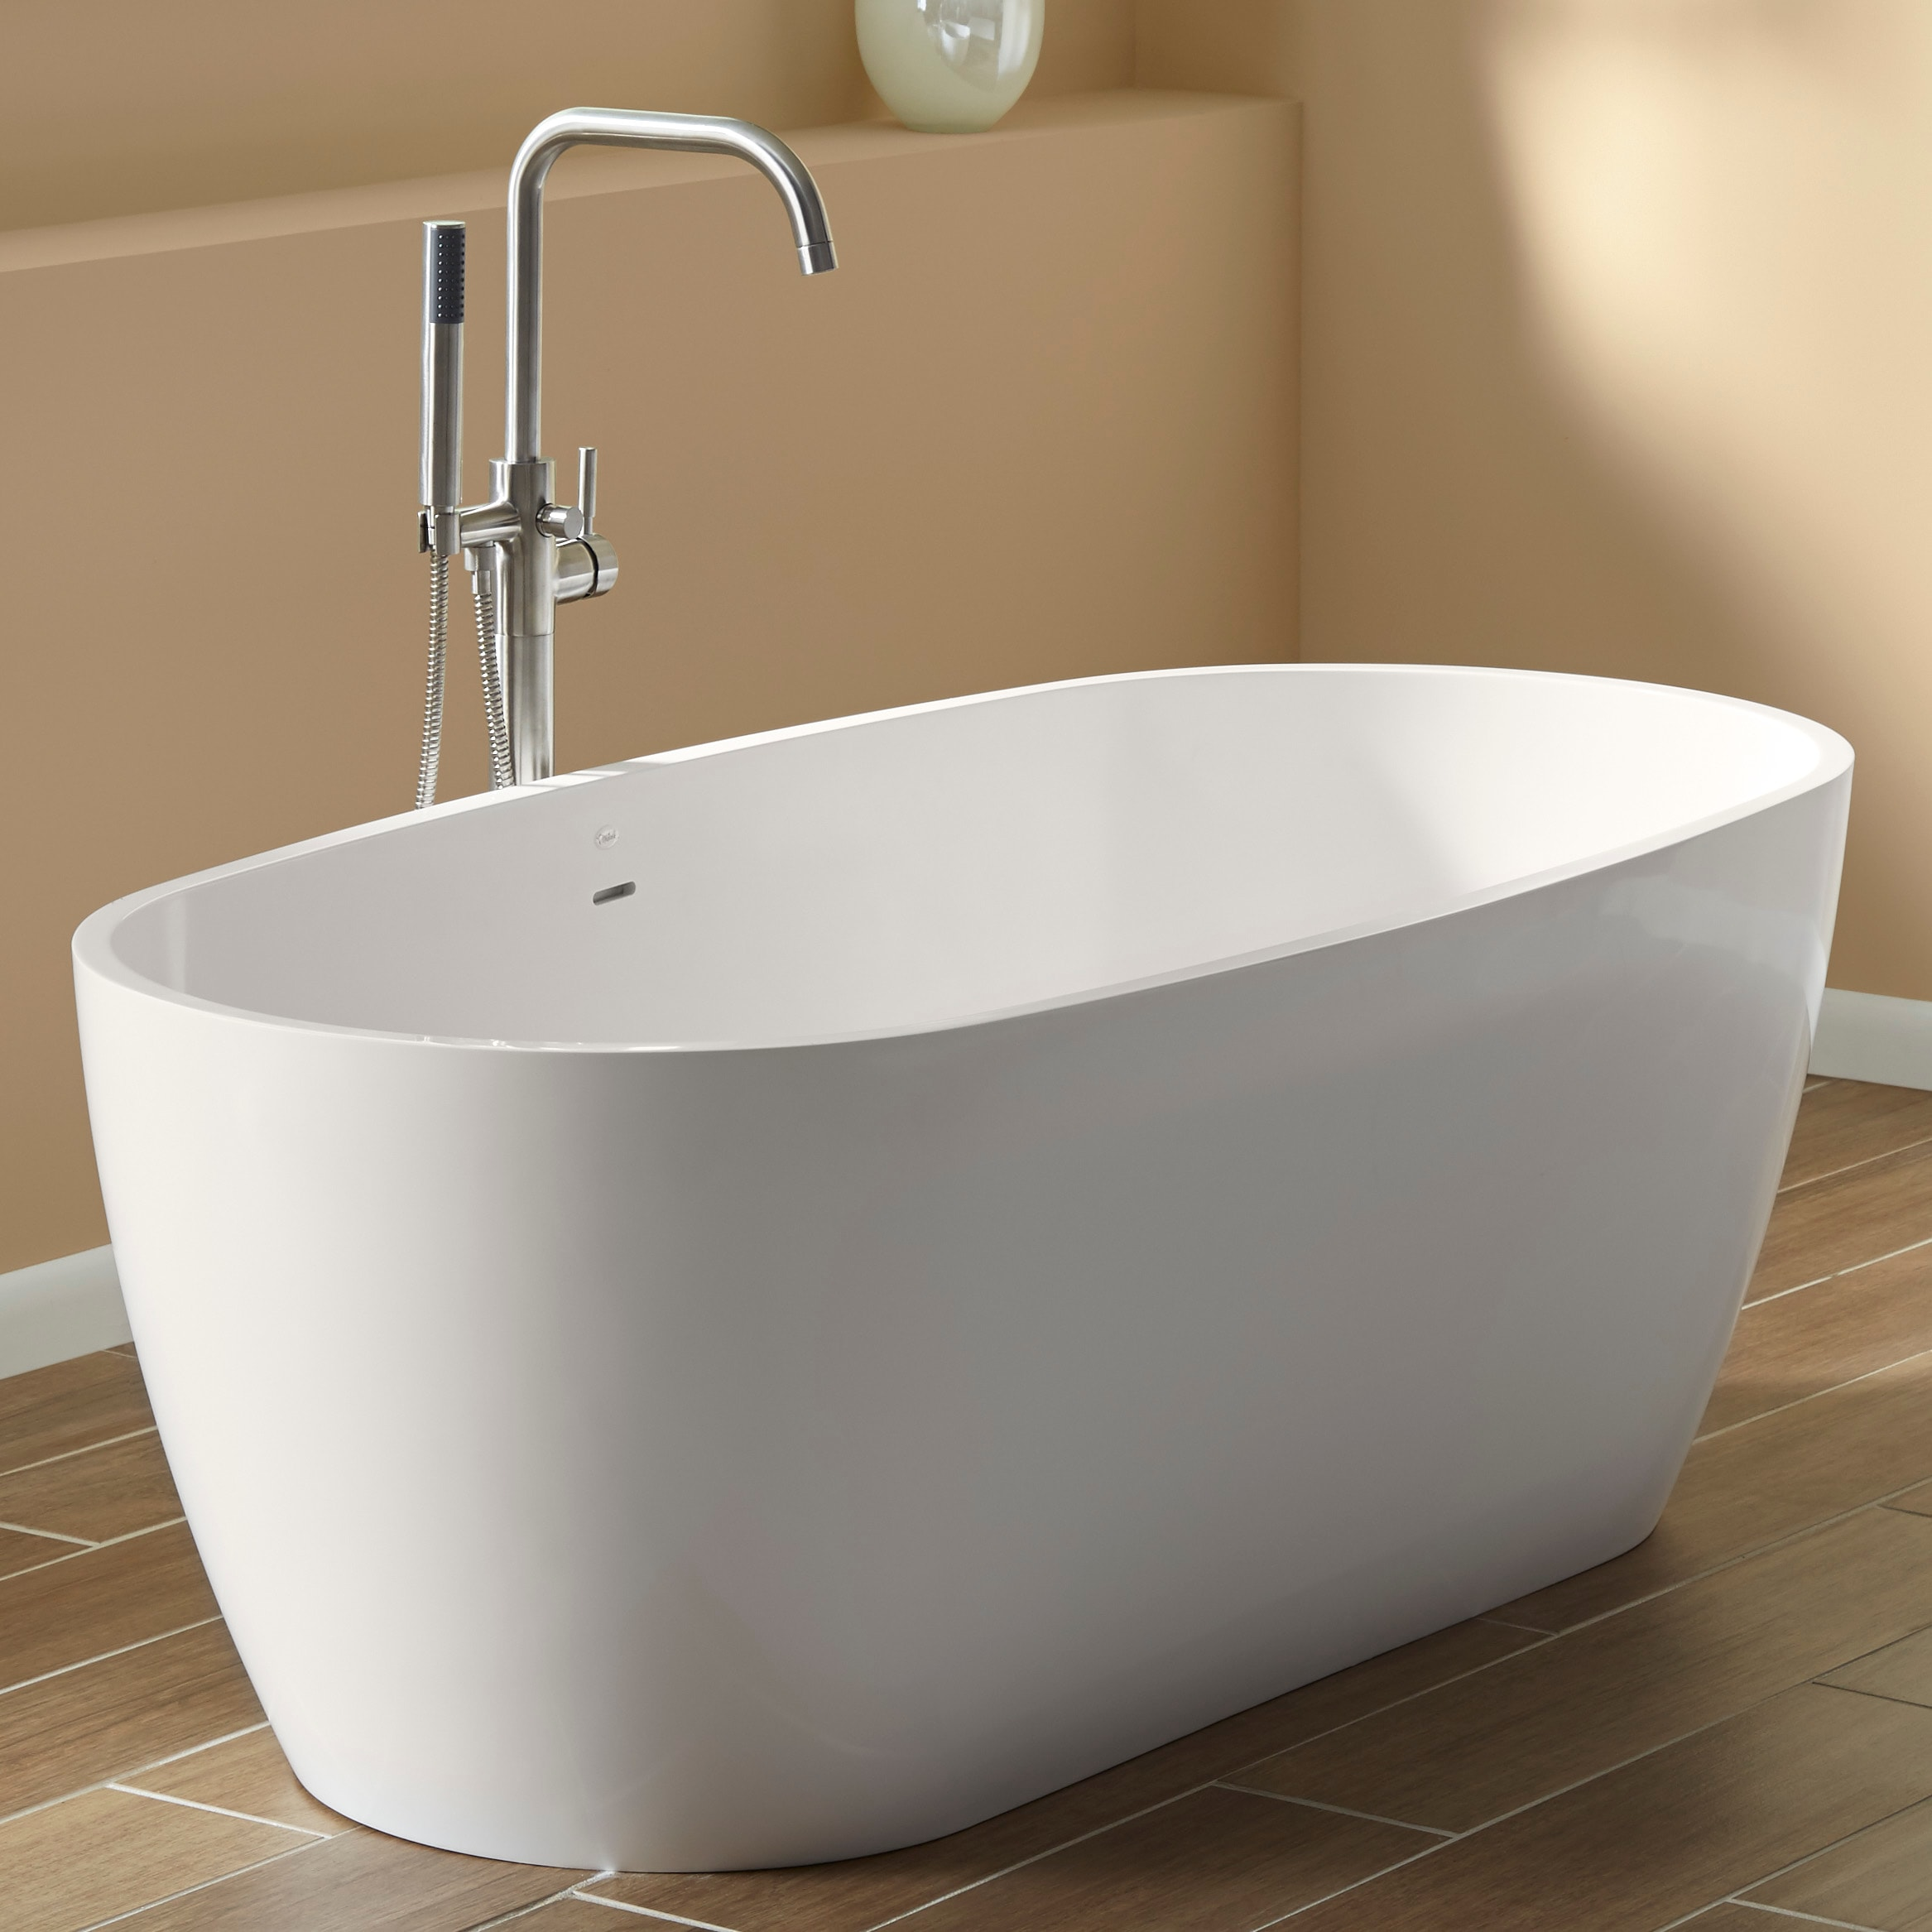 Mirabelle Mirocfs6632wh White 66 Free Standing Soaking Tub With Center Drain Faucet Com